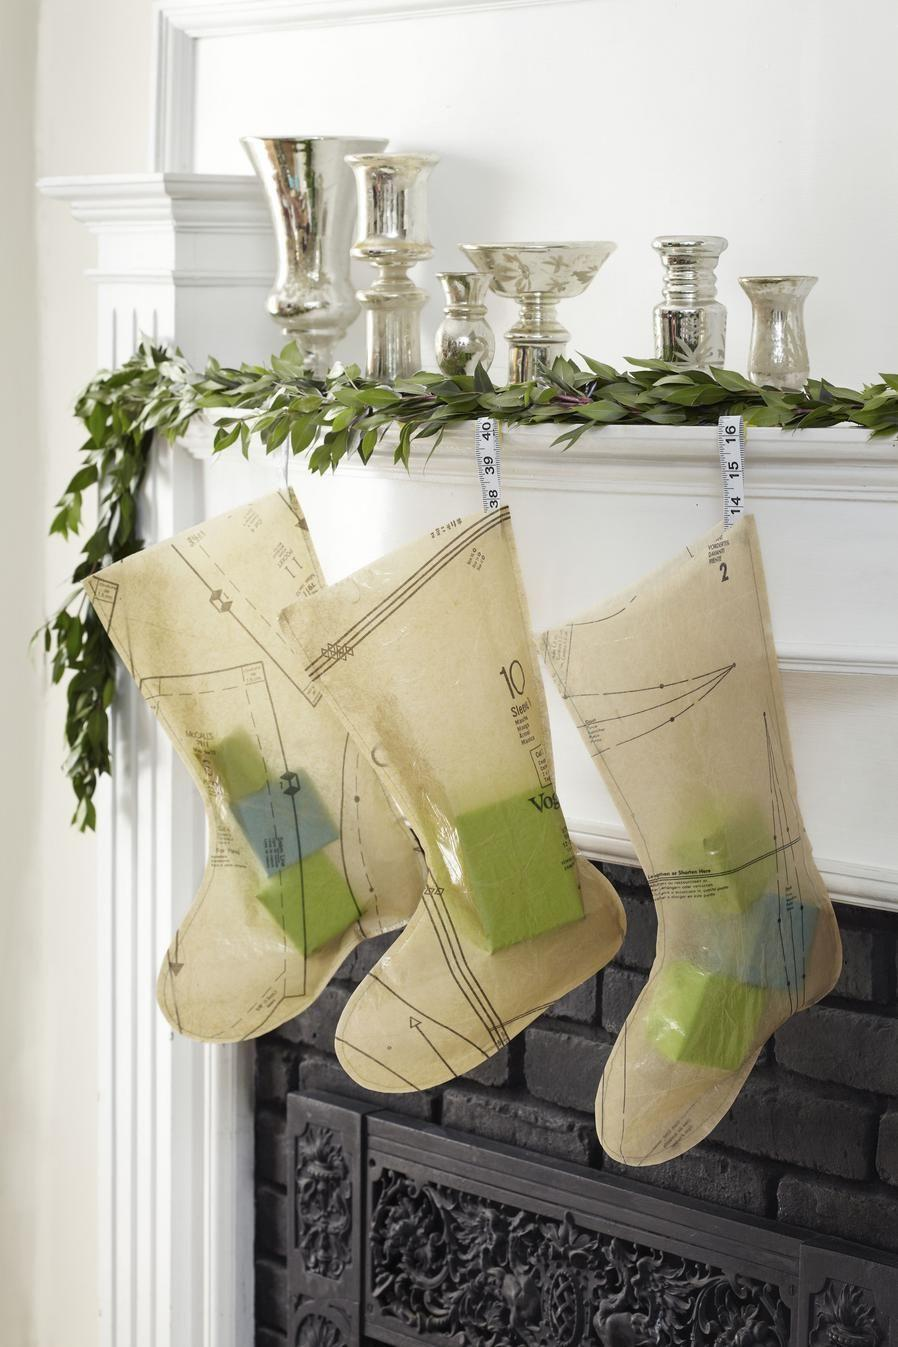 """<p>Use iron-on vinyl to turn paper patterns into durable fabric for stockings. </p><p><strong><a href=""""https://www.countryliving.com/diy-crafts/how-to/g1071/unique-christmas-stocking-craft-1210/"""" rel=""""nofollow noopener"""" target=""""_blank"""" data-ylk=""""slk:Get the tutorial."""" class=""""link rapid-noclick-resp"""">Get the tutorial.</a></strong> </p><p><a class=""""link rapid-noclick-resp"""" href=""""https://www.amazon.com/s/ref=nb_sb_noss_1?url=search-alias%3Daps&field-keywords=iron-on+vinyl+&rh=i%3Aaps%2Ck%3Airon-on+vinyl+&tag=syn-yahoo-20&ascsubtag=%5Bartid%7C10050.g.1407%5Bsrc%7Cyahoo-us"""" rel=""""nofollow noopener"""" target=""""_blank"""" data-ylk=""""slk:SHOP IRON-ON VINYL"""">SHOP IRON-ON VINYL</a></p>"""